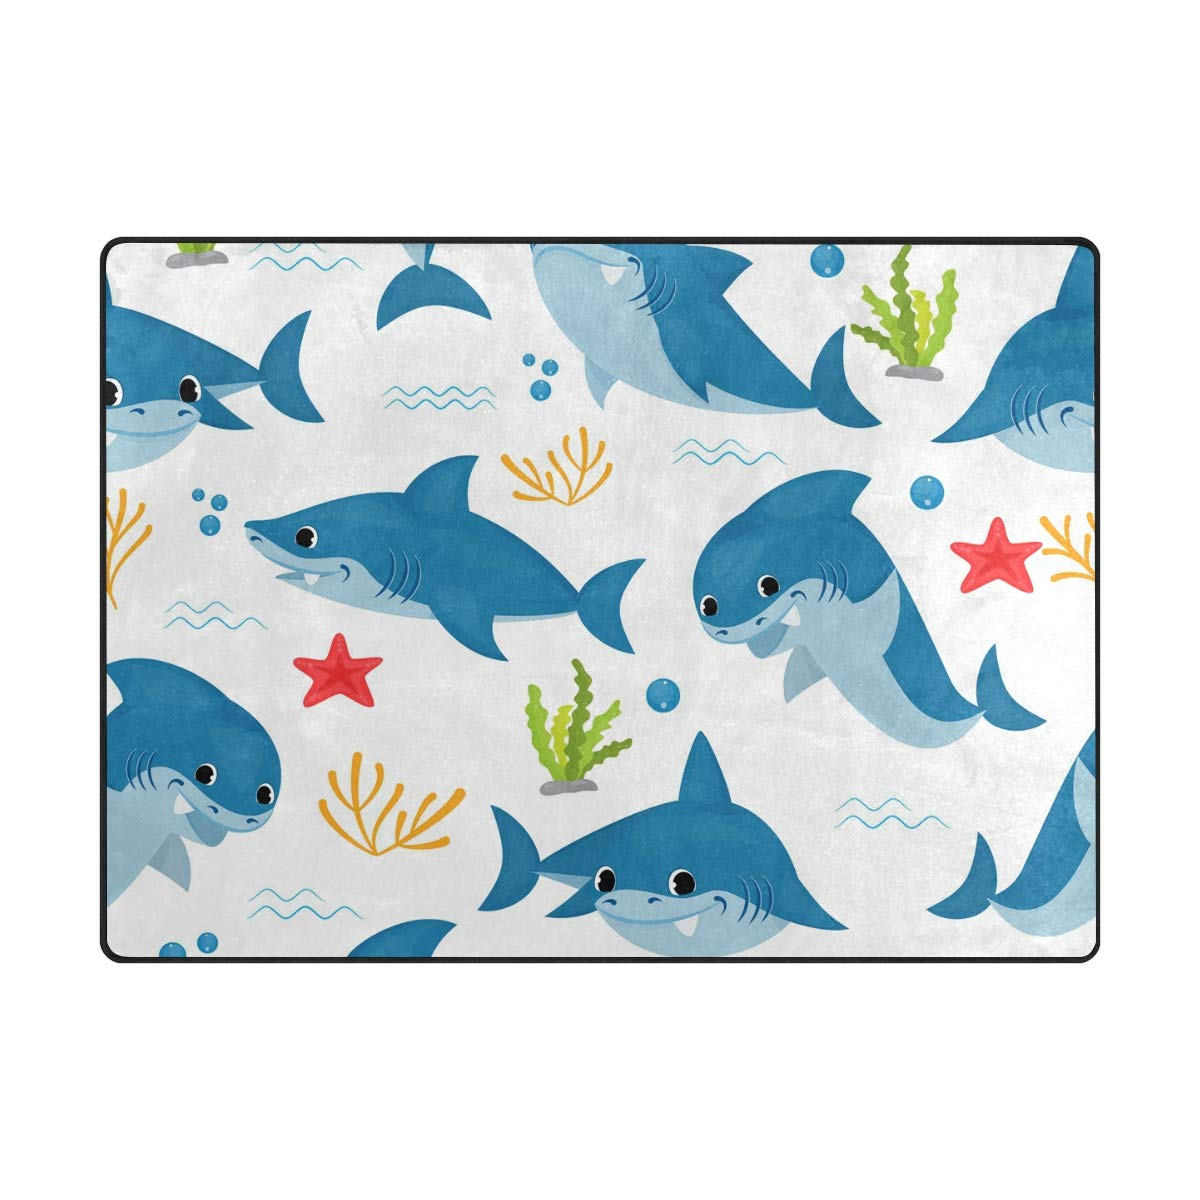 La Random Large Soft Rugs 63x48 Inches Arctic Animals Non-Skid Lightweight Nursery Yoga Rugs Play Mat for Kids Playing Room Living Room Bedroom Floor Mats